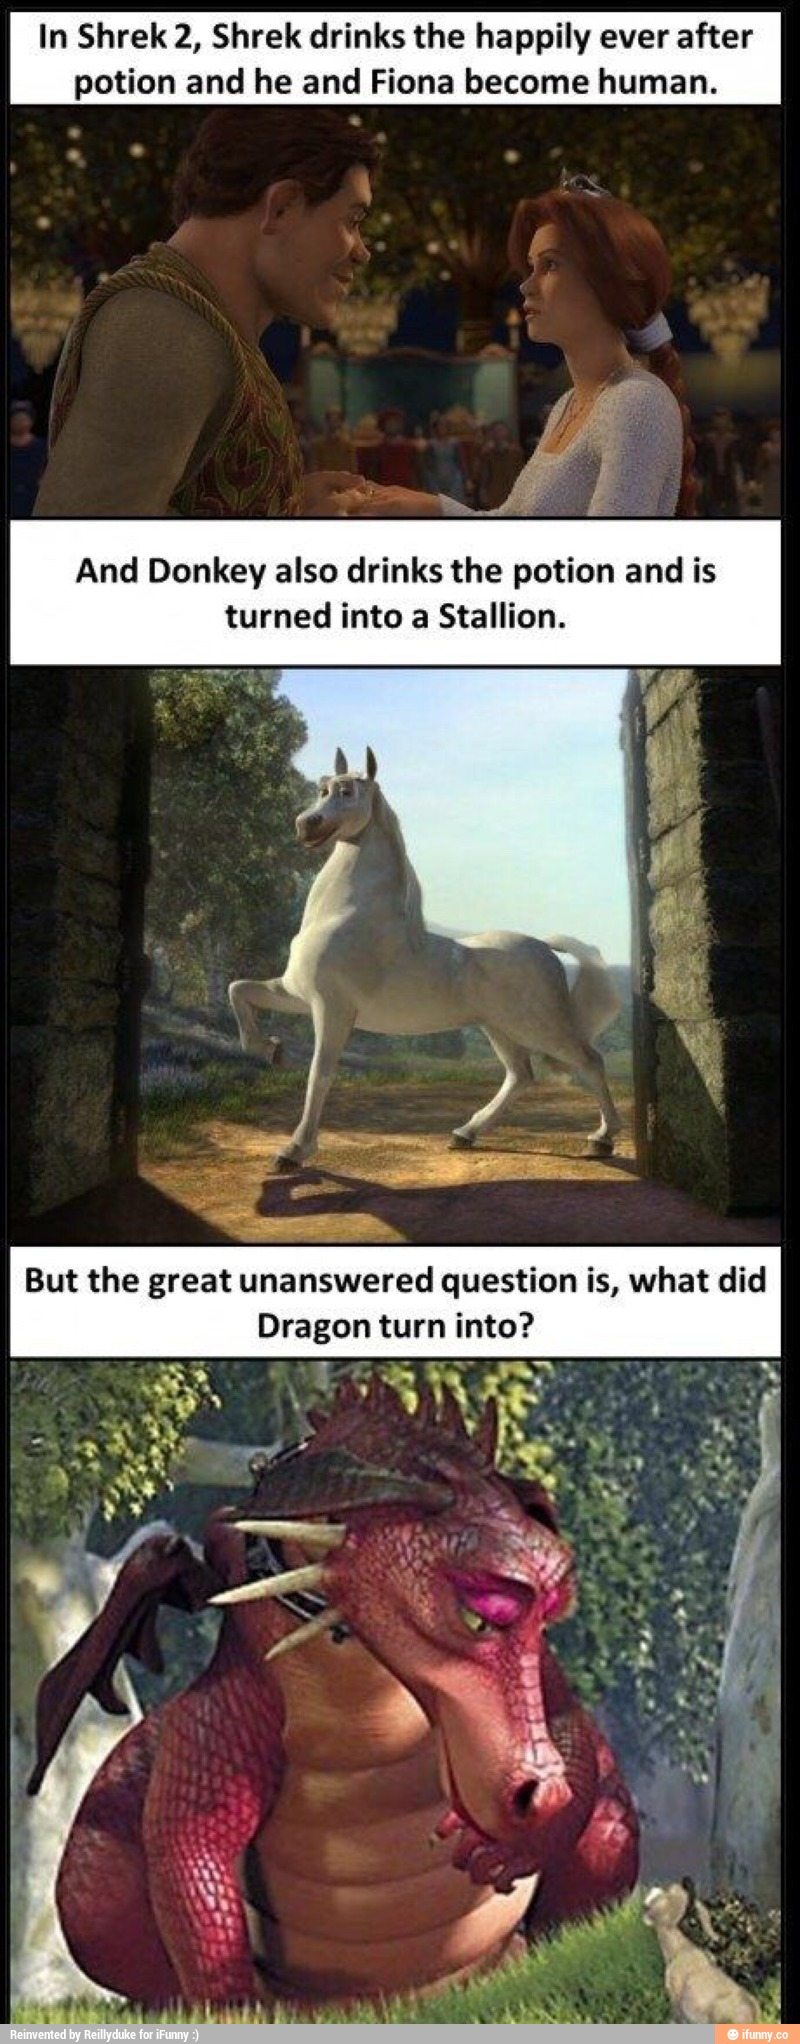 In Shrek 2 Shrek Drinks The Happily Ever After Potion And He And Fiona Become Human And Donkey Also Drinks The Potion And Is Turned Into A Stallion Ifunny